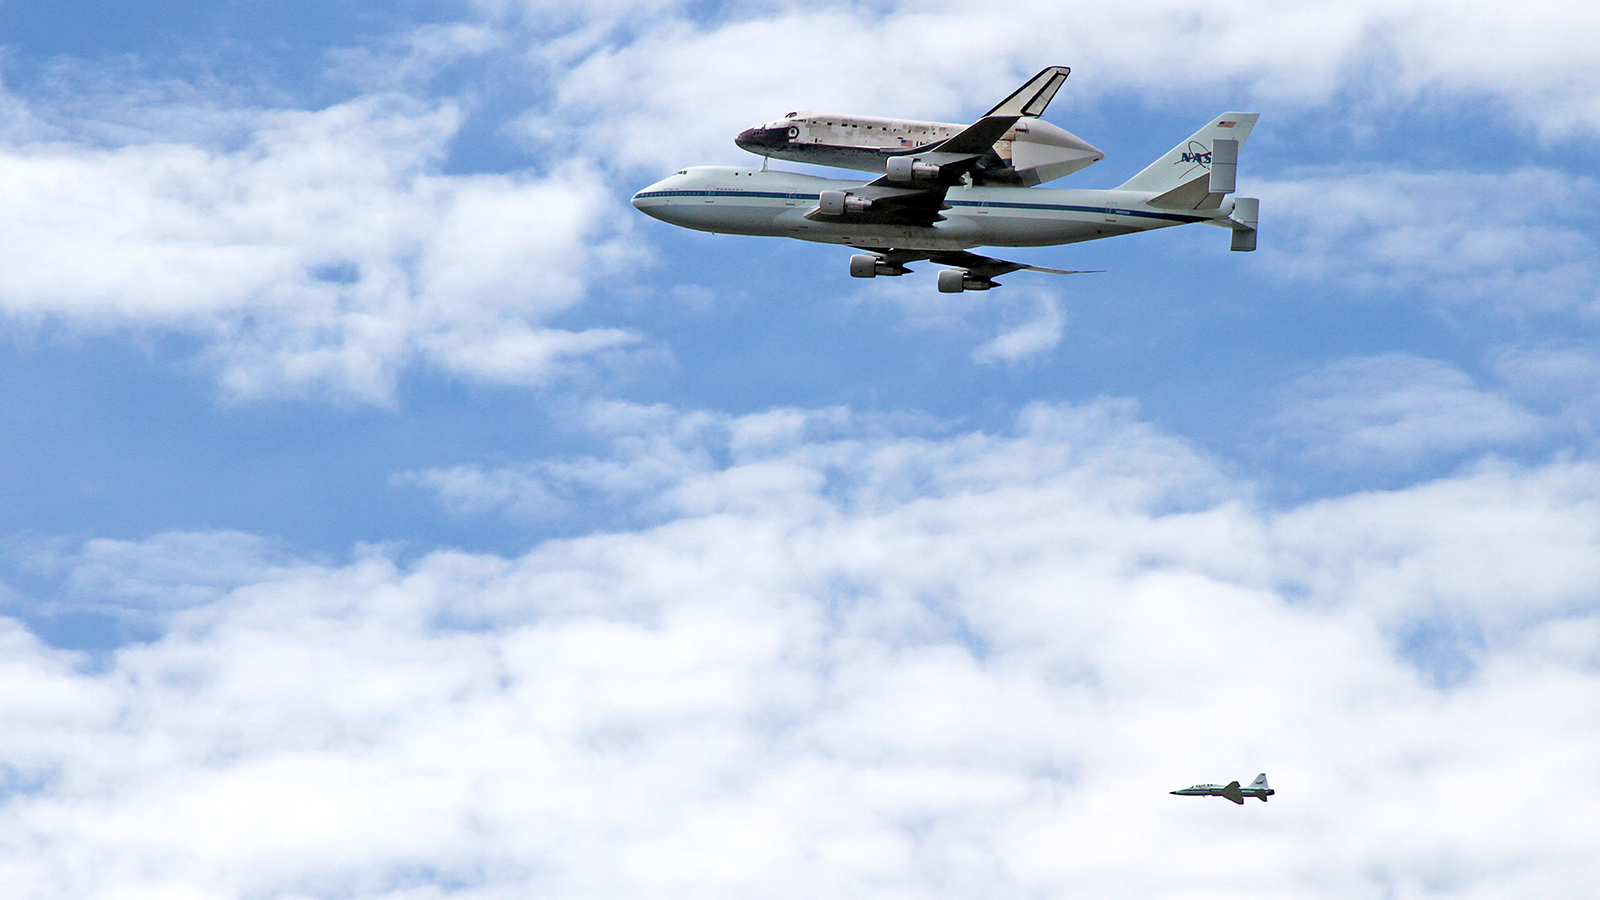 Click here to read The Best Shot of the Space Shuttle's Amazing Goodbye Flight You'll See Today